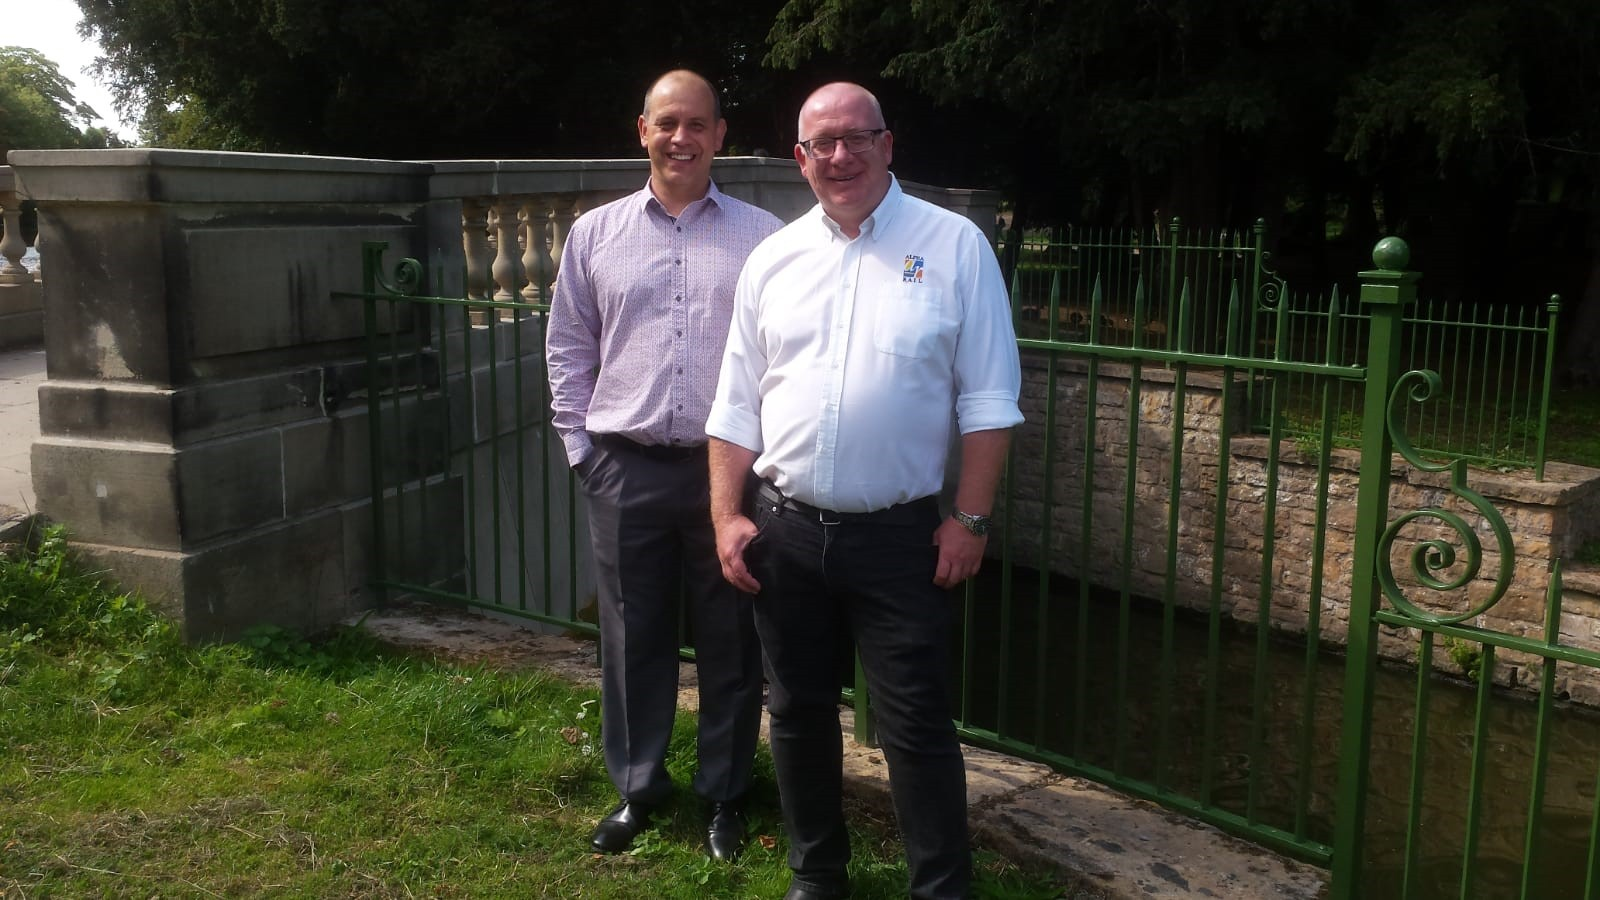 Neil Mason and Paul Johnson at Highfields Park Restoration Project re-opning on 31 August 2018